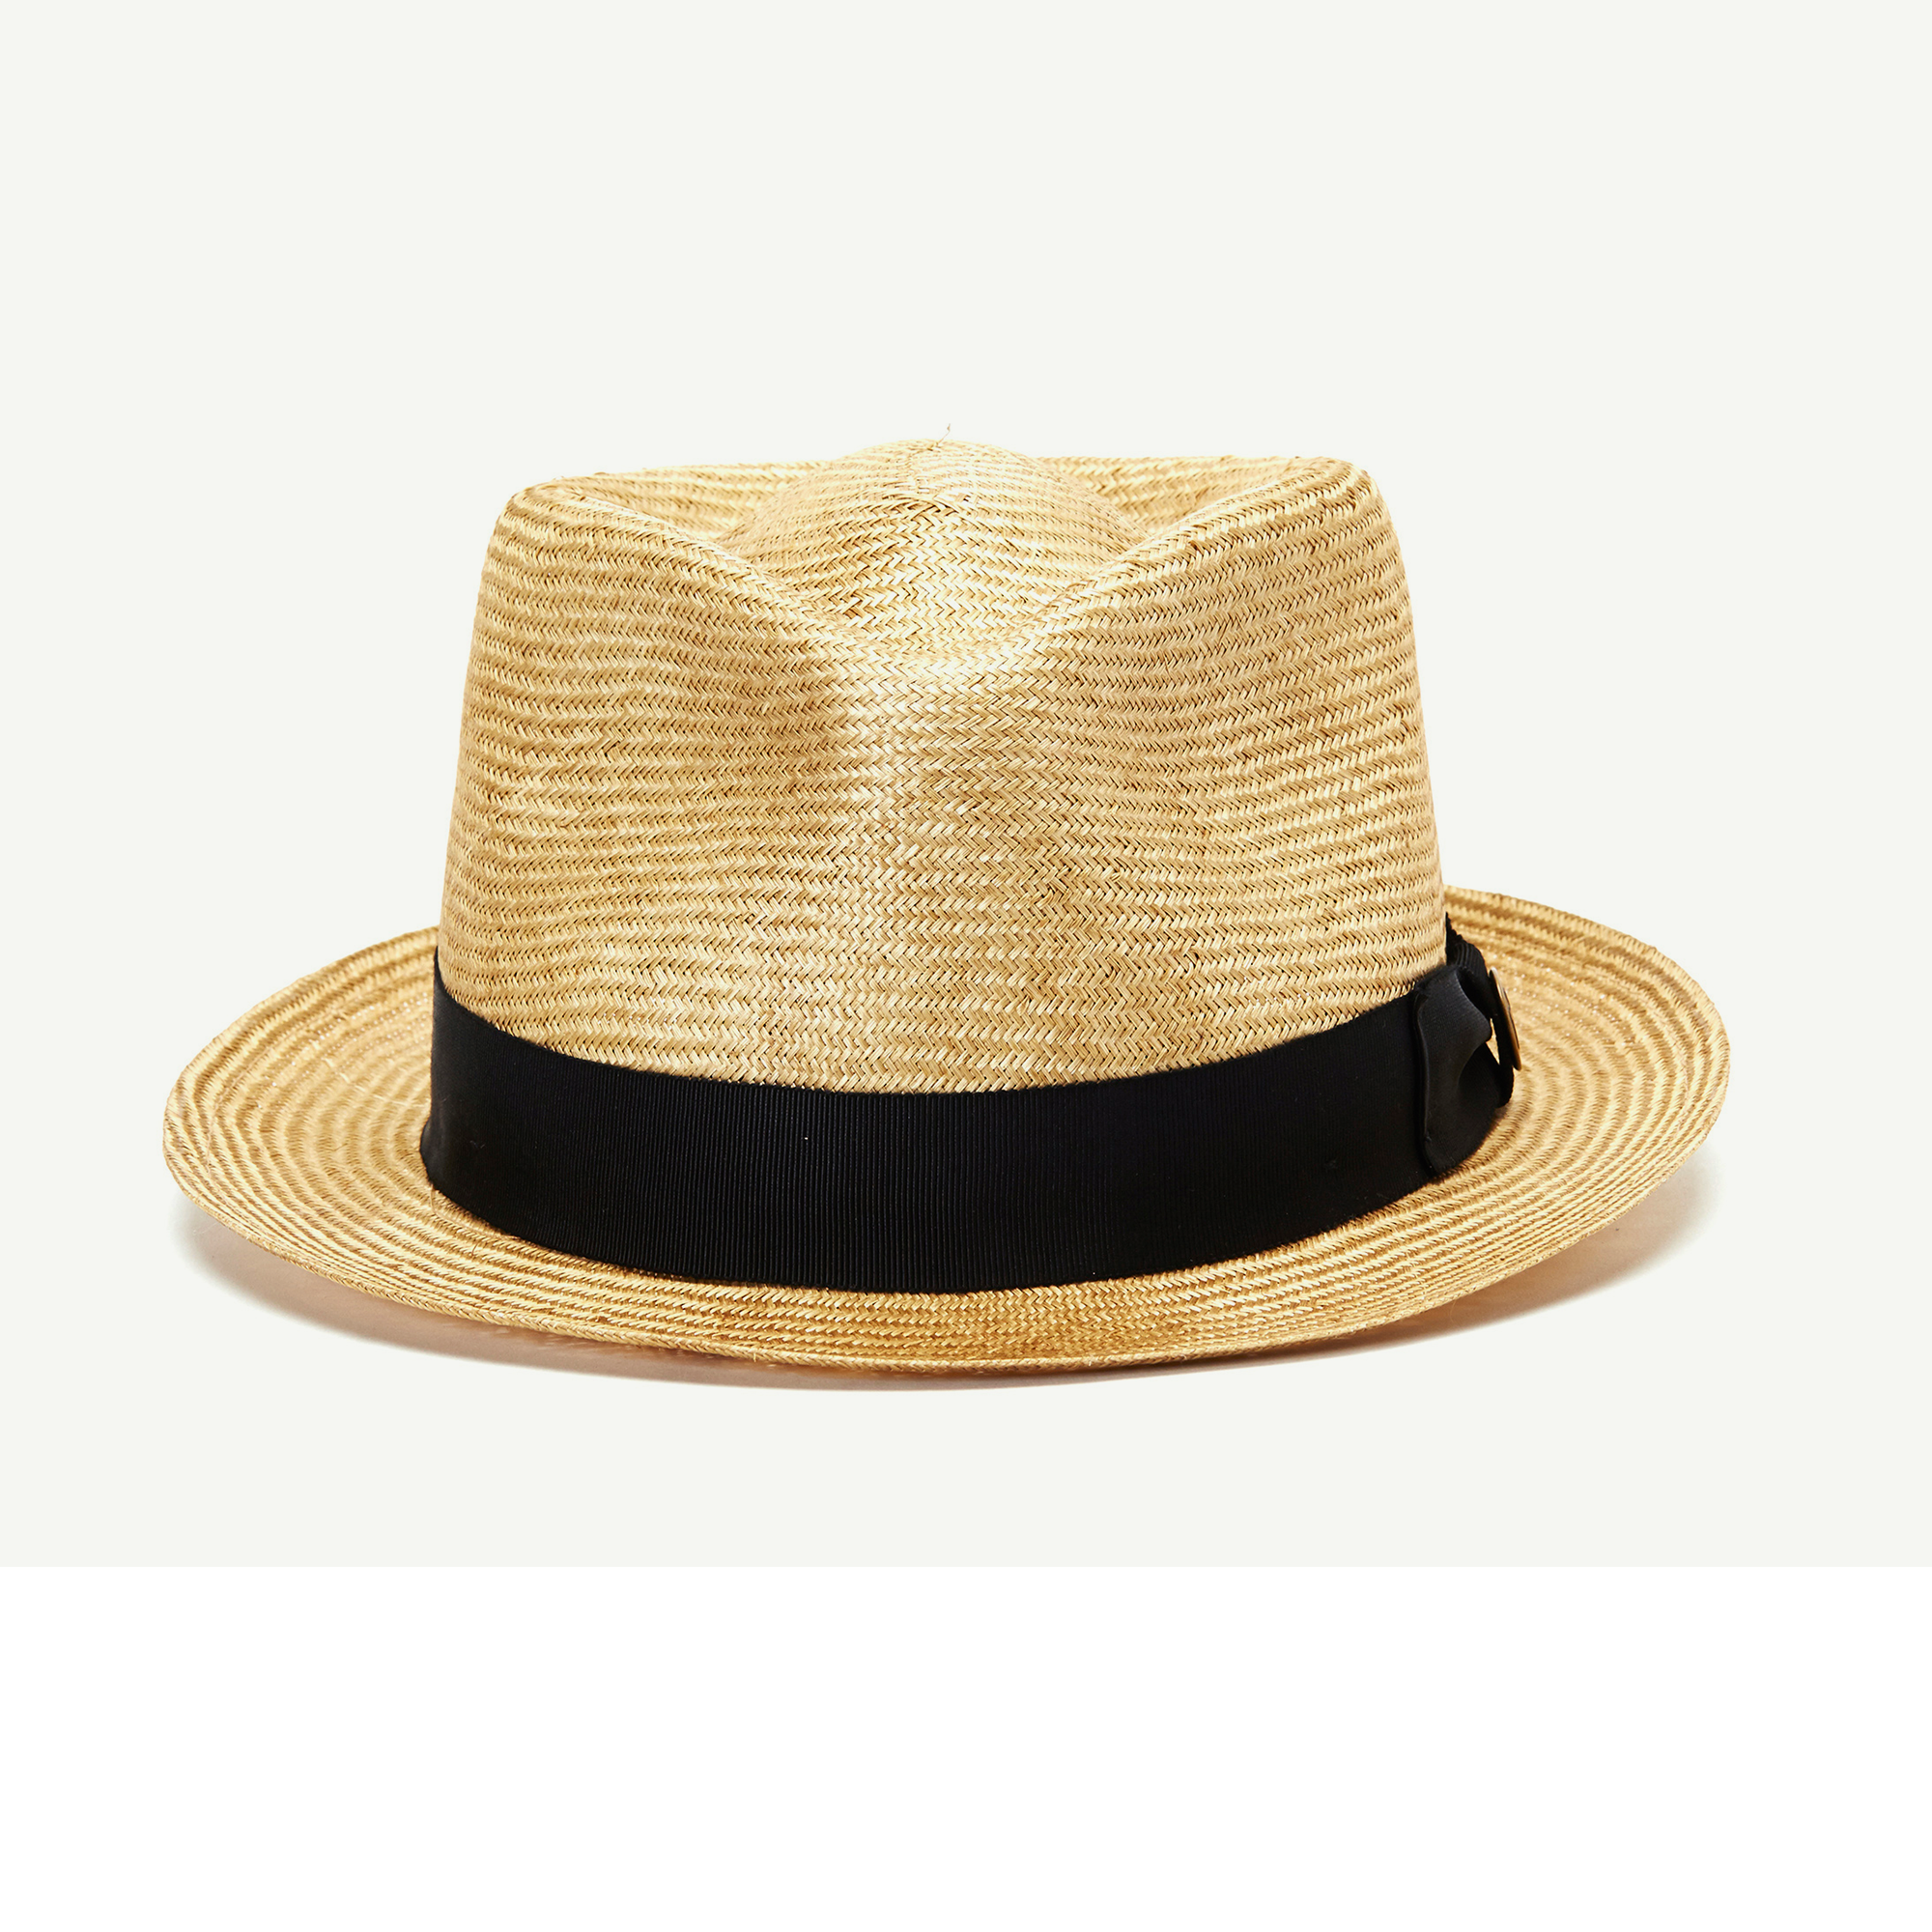 266208401 Tad Stanton Camel Straw Stingy Brim Fedora hat front view | Hat's in ...